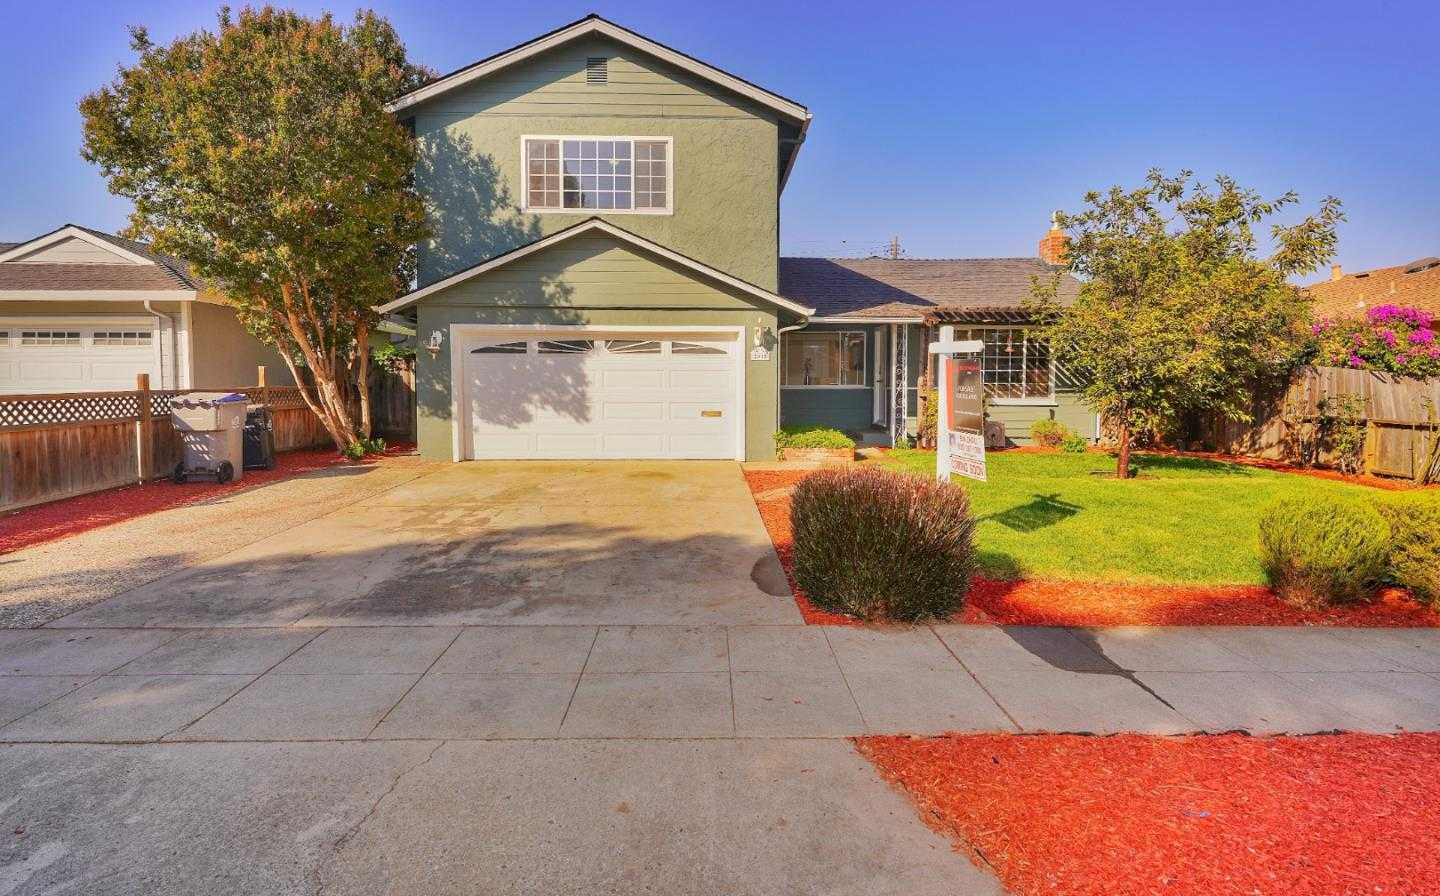 $1,248,000 - 4Br/3Ba -  for Sale in San Jose